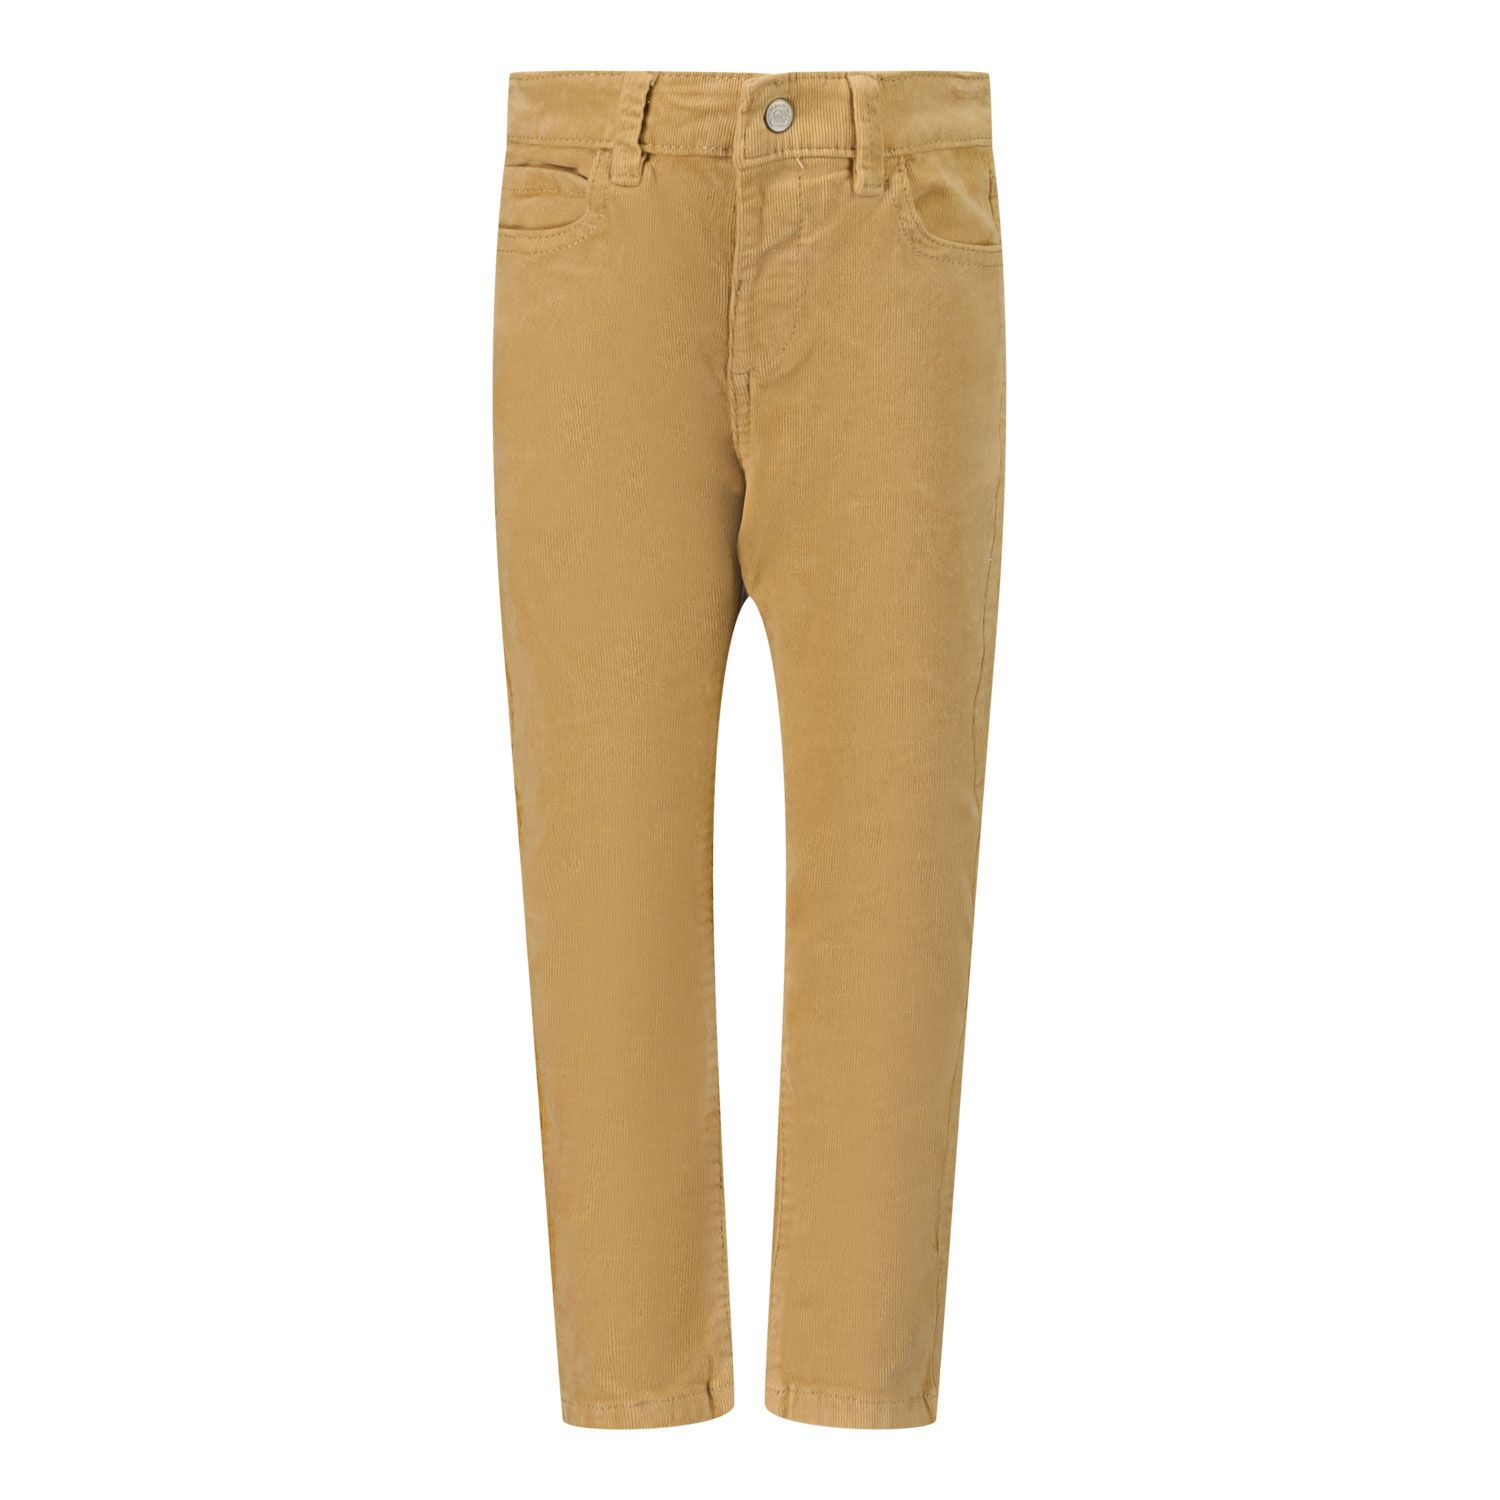 Picture of Mayoral 502 baby pants beige